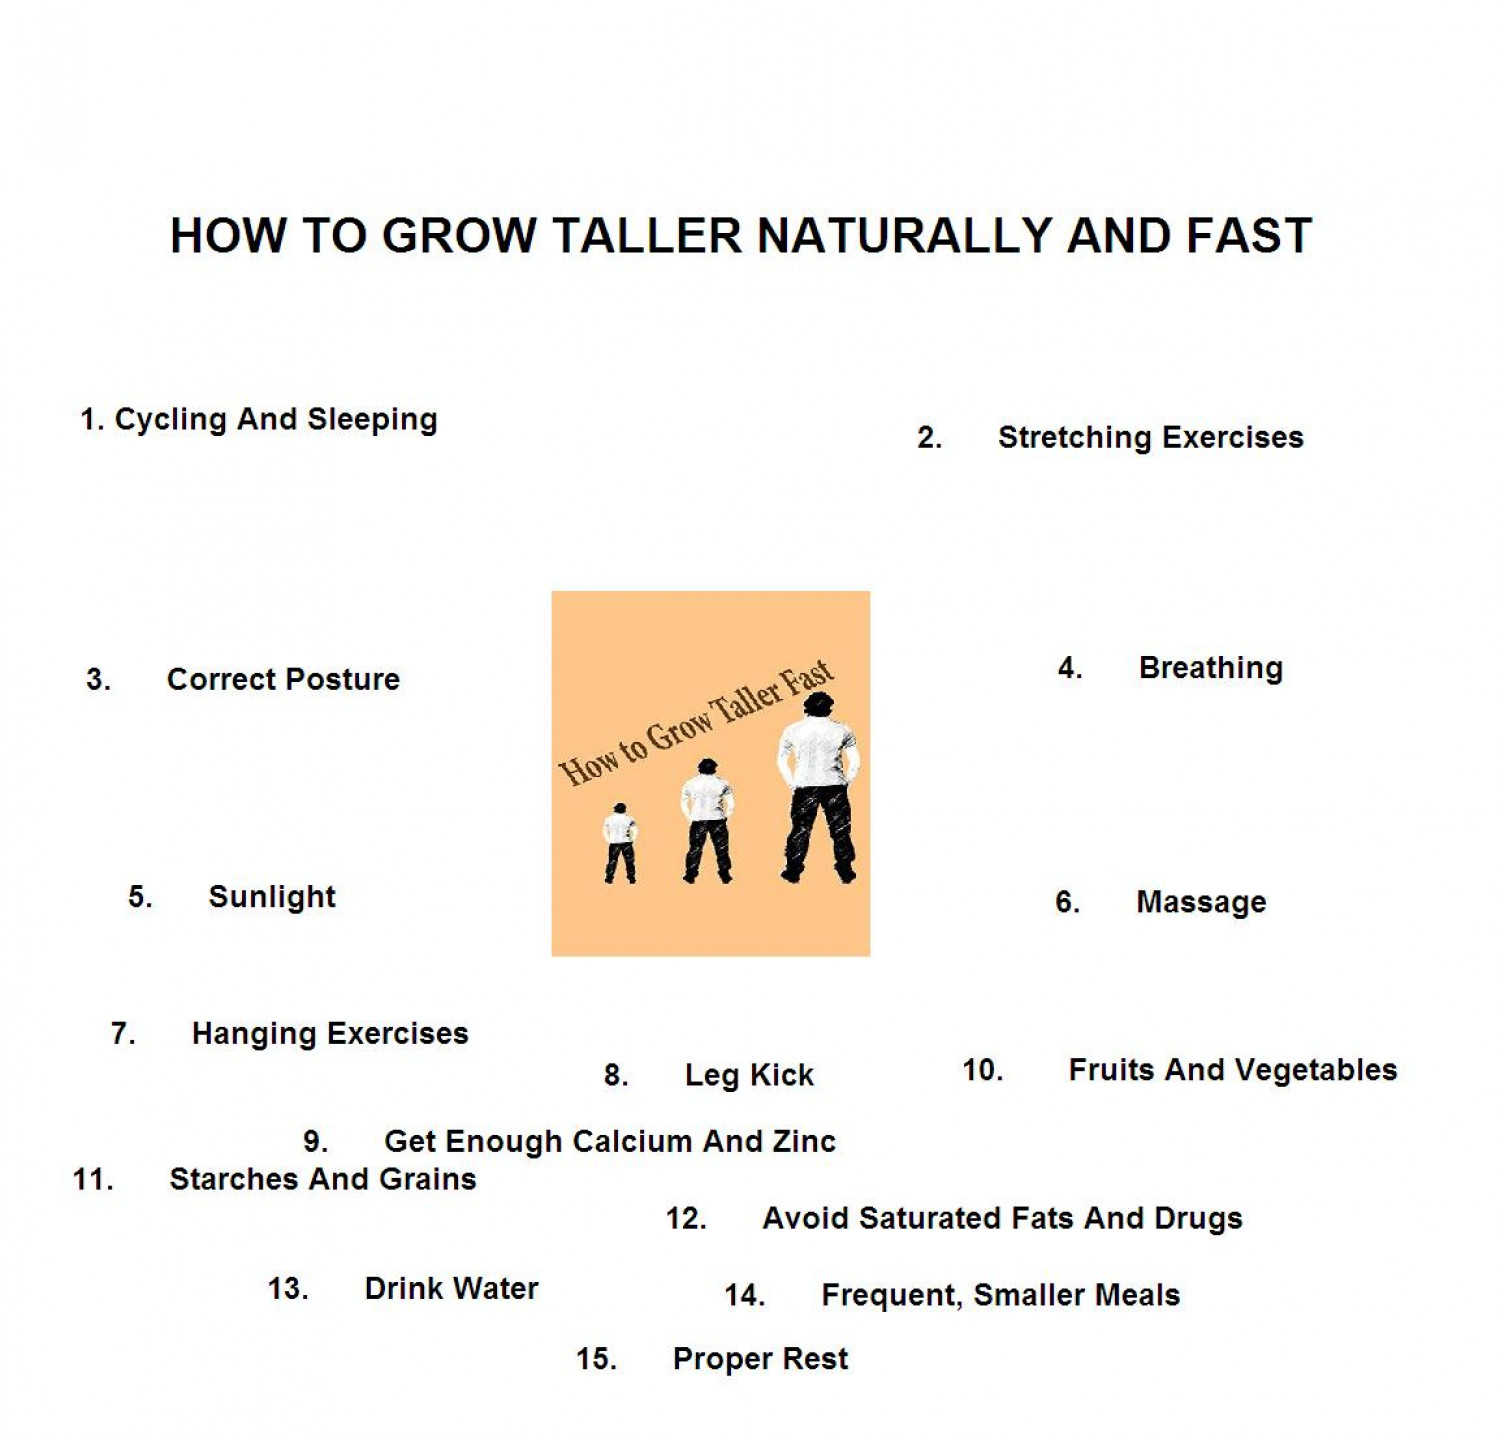 Best Way To Grow Taller Fast Naturally